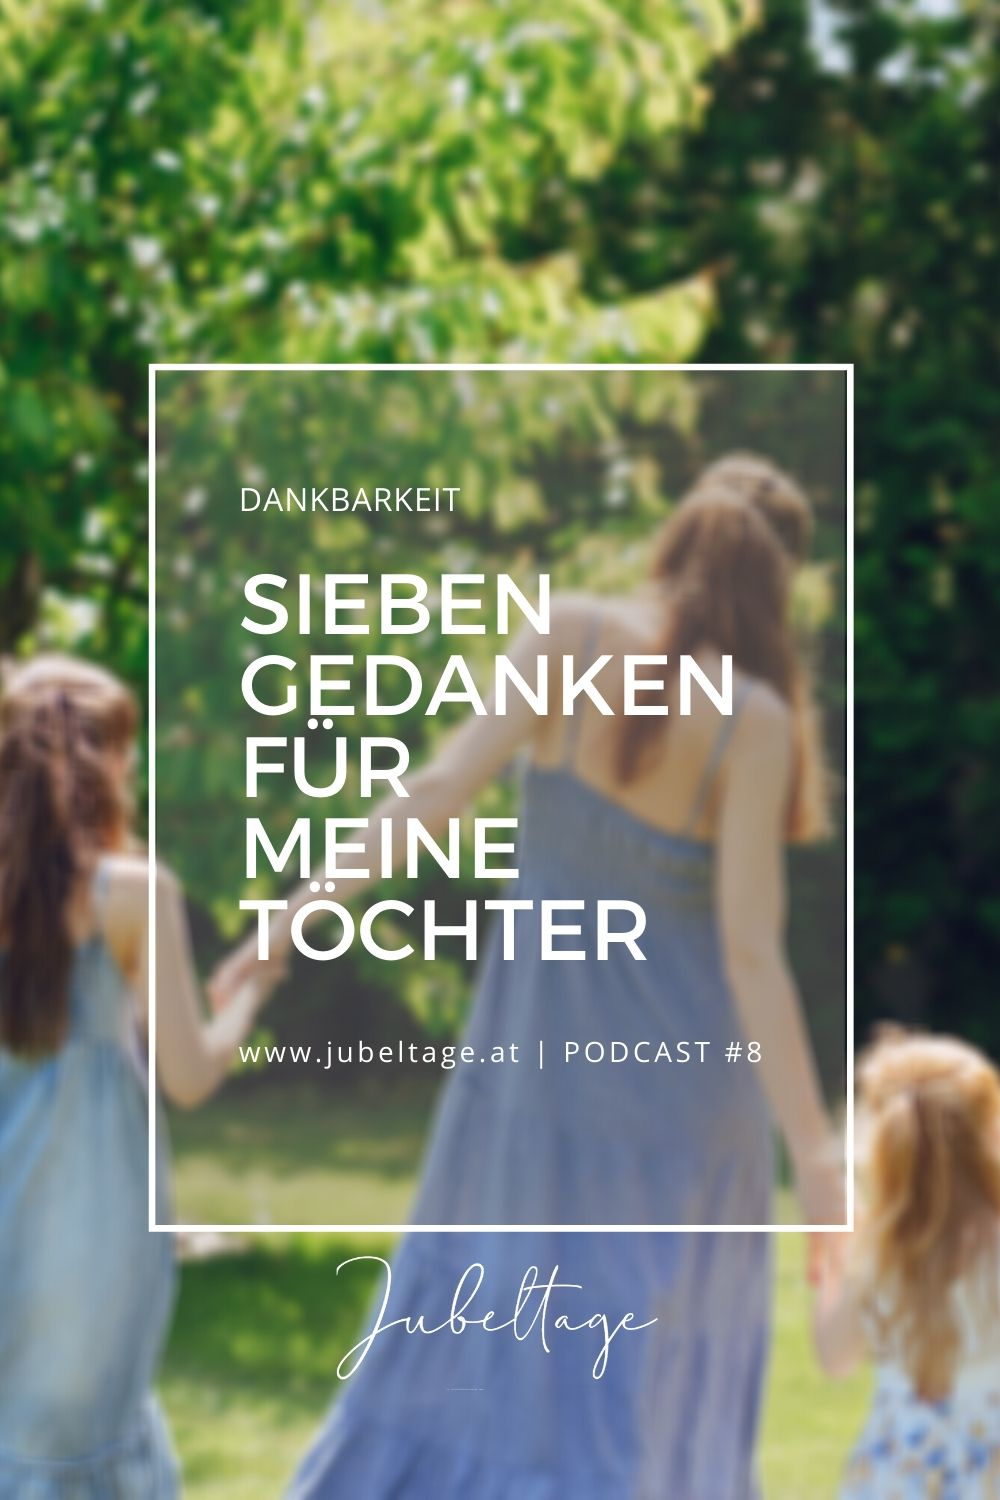 Jubeltage Podcast Achtsamkeit